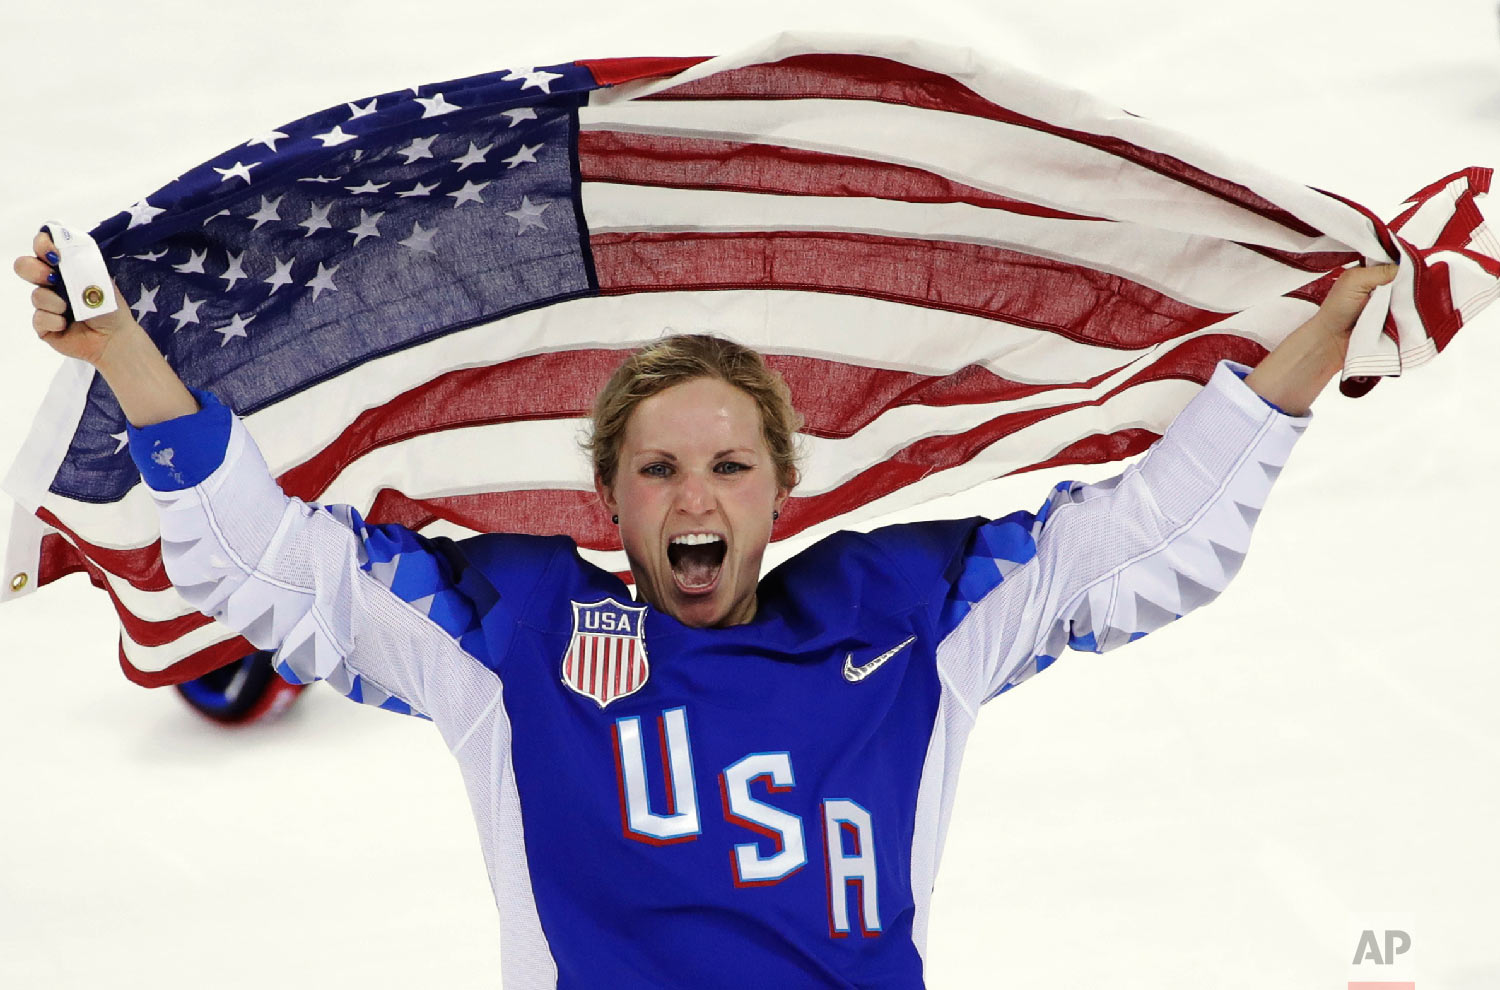 Jocelyne Lamoureux-Davidson, of the United States, celebrates after winning against Canada in the women's gold medal hockey game at the 2018 Winter Olympics in Gangneung, South Korea, on Feb. 22, 2018. (AP Photo/Matt Slocum)